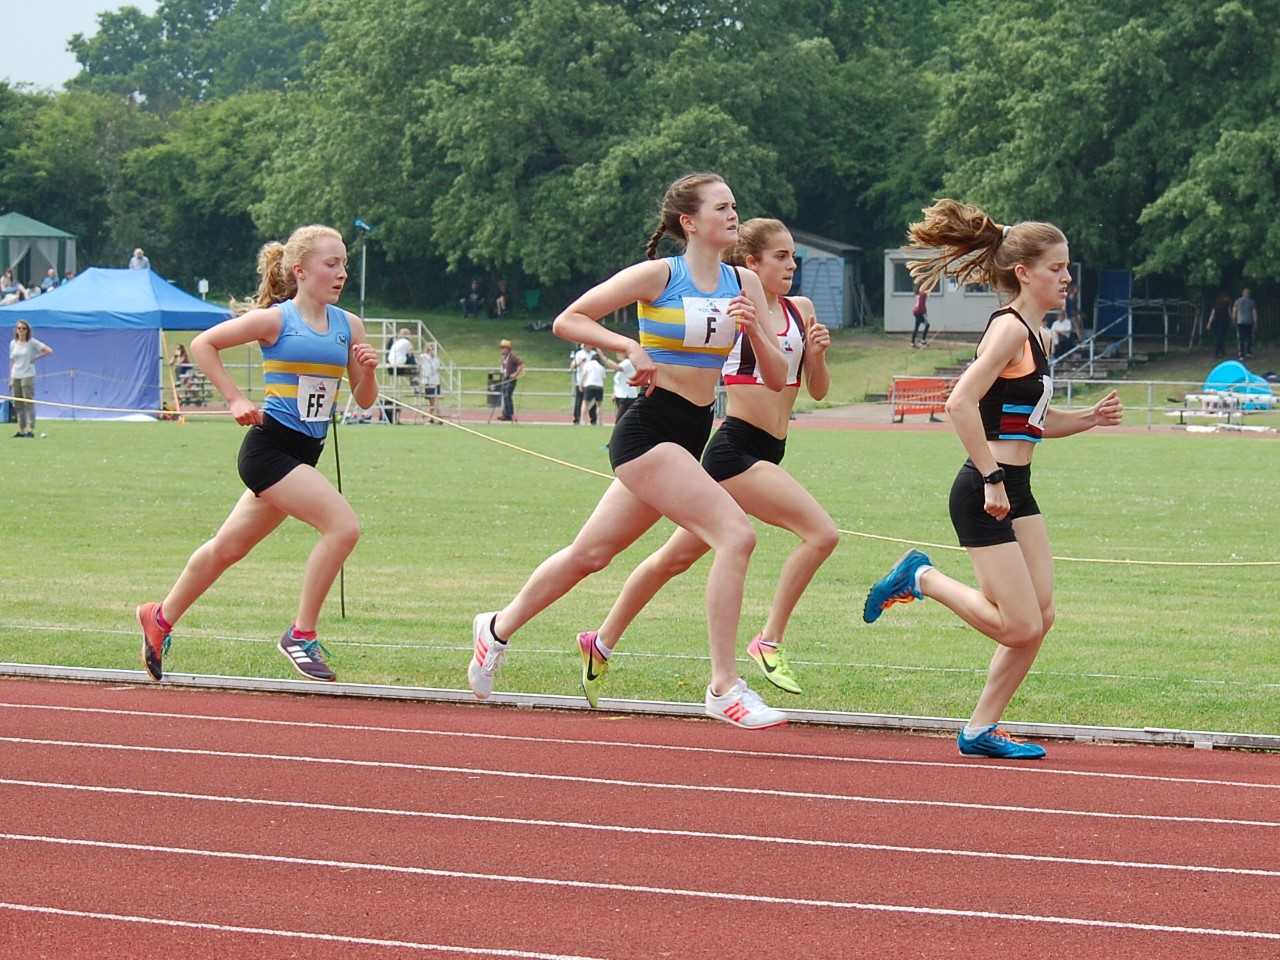 WSEH Athletics Club (blue vests) members Molly Jones (left) and Phoebe Anderson (right) in action during the Youth Development League Southern Premier series match at Bromley.